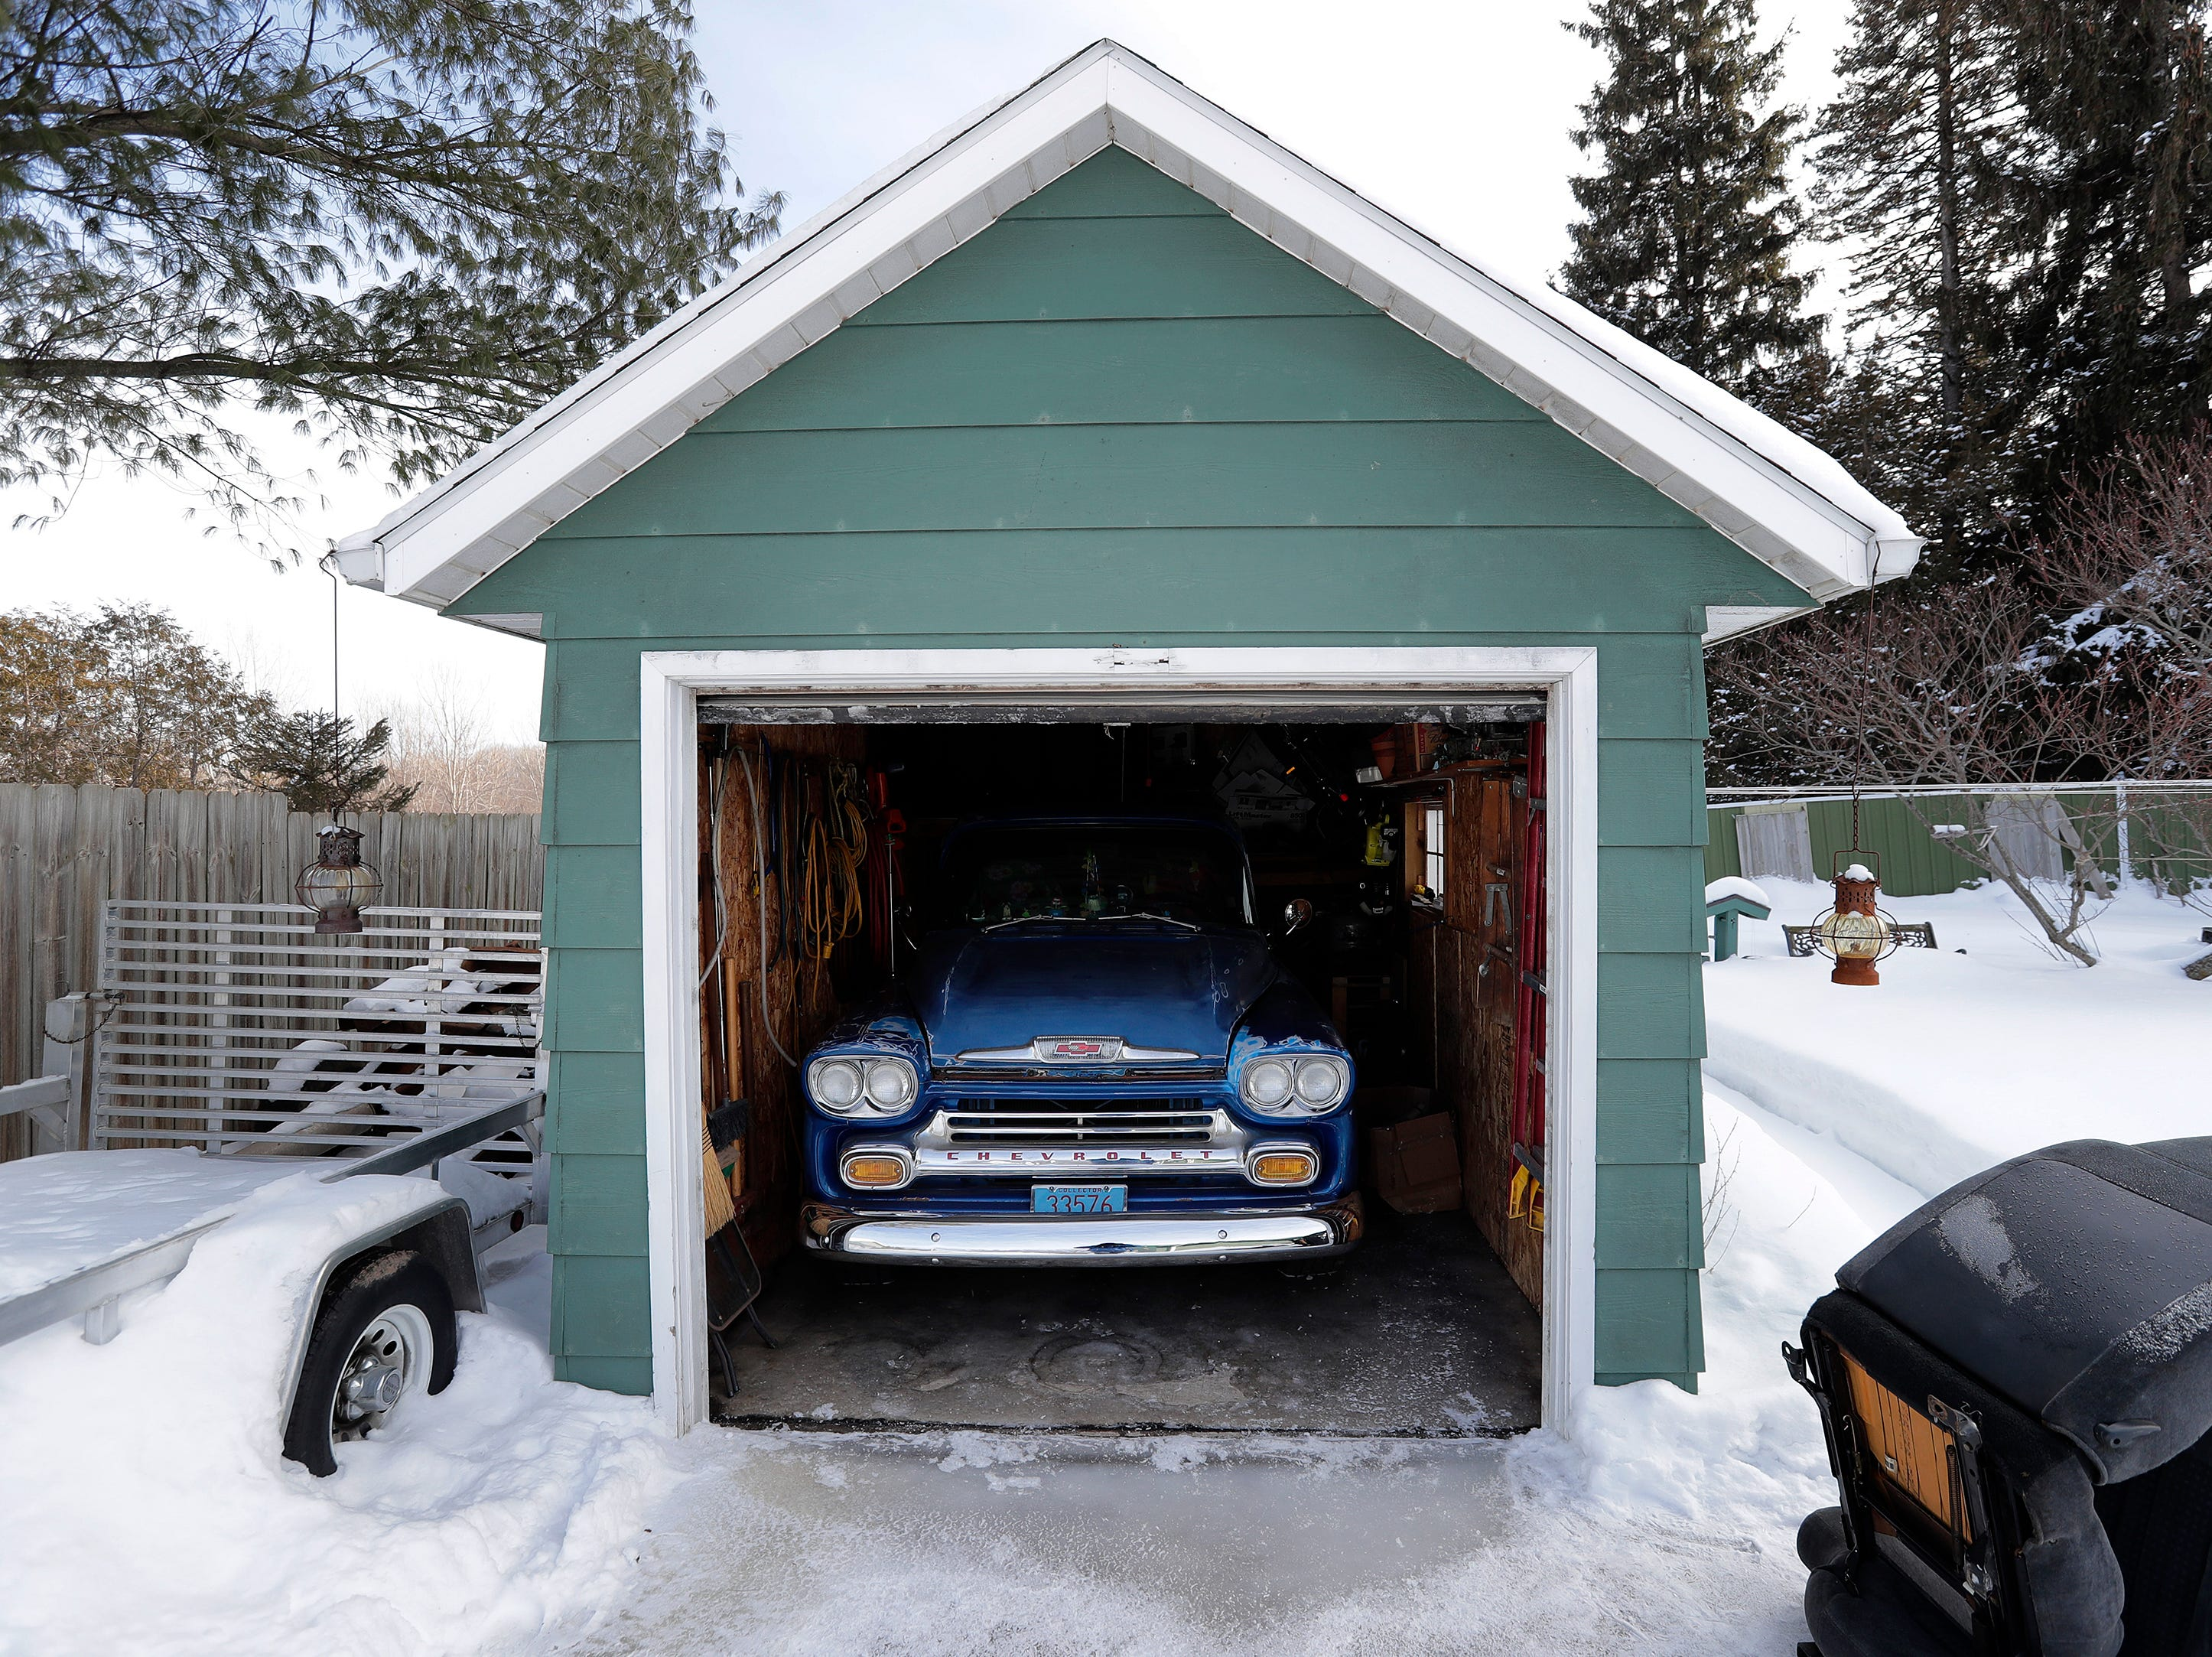 Marty Olejniczak's 1958 Chevrolet truck is shown in his garage on Thursday, February 28, 2019 in Howard, Wis.